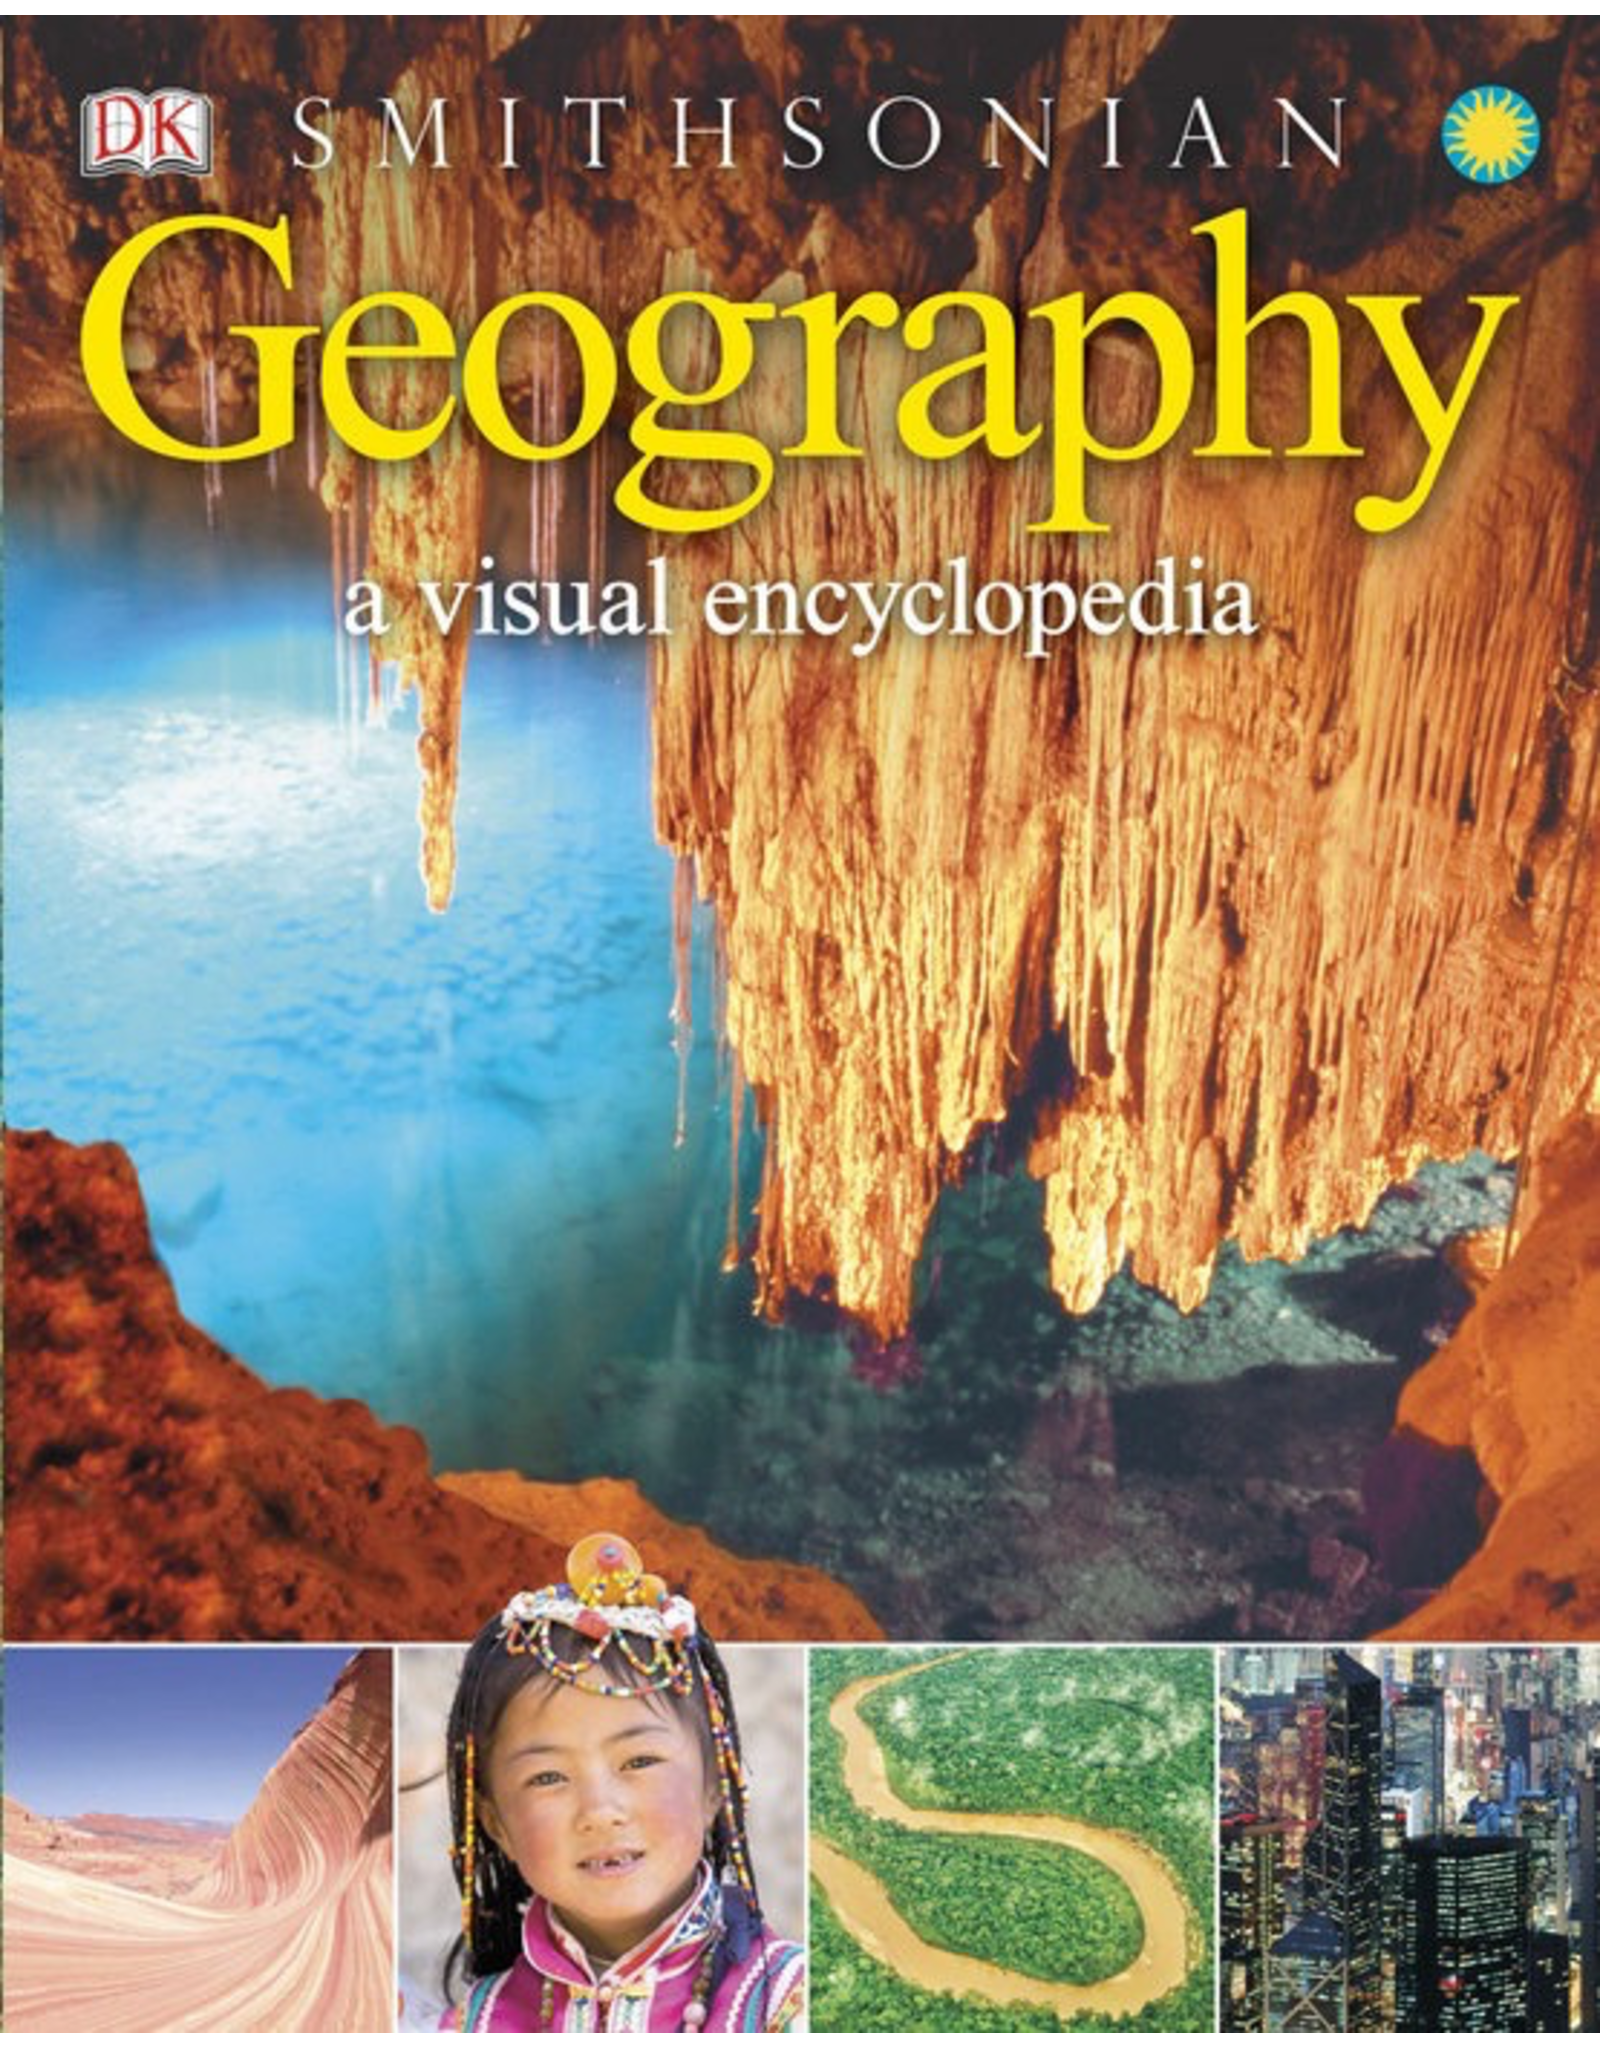 DK A VISUAL ENCYCLOPEDIA - GEOGRAPHY